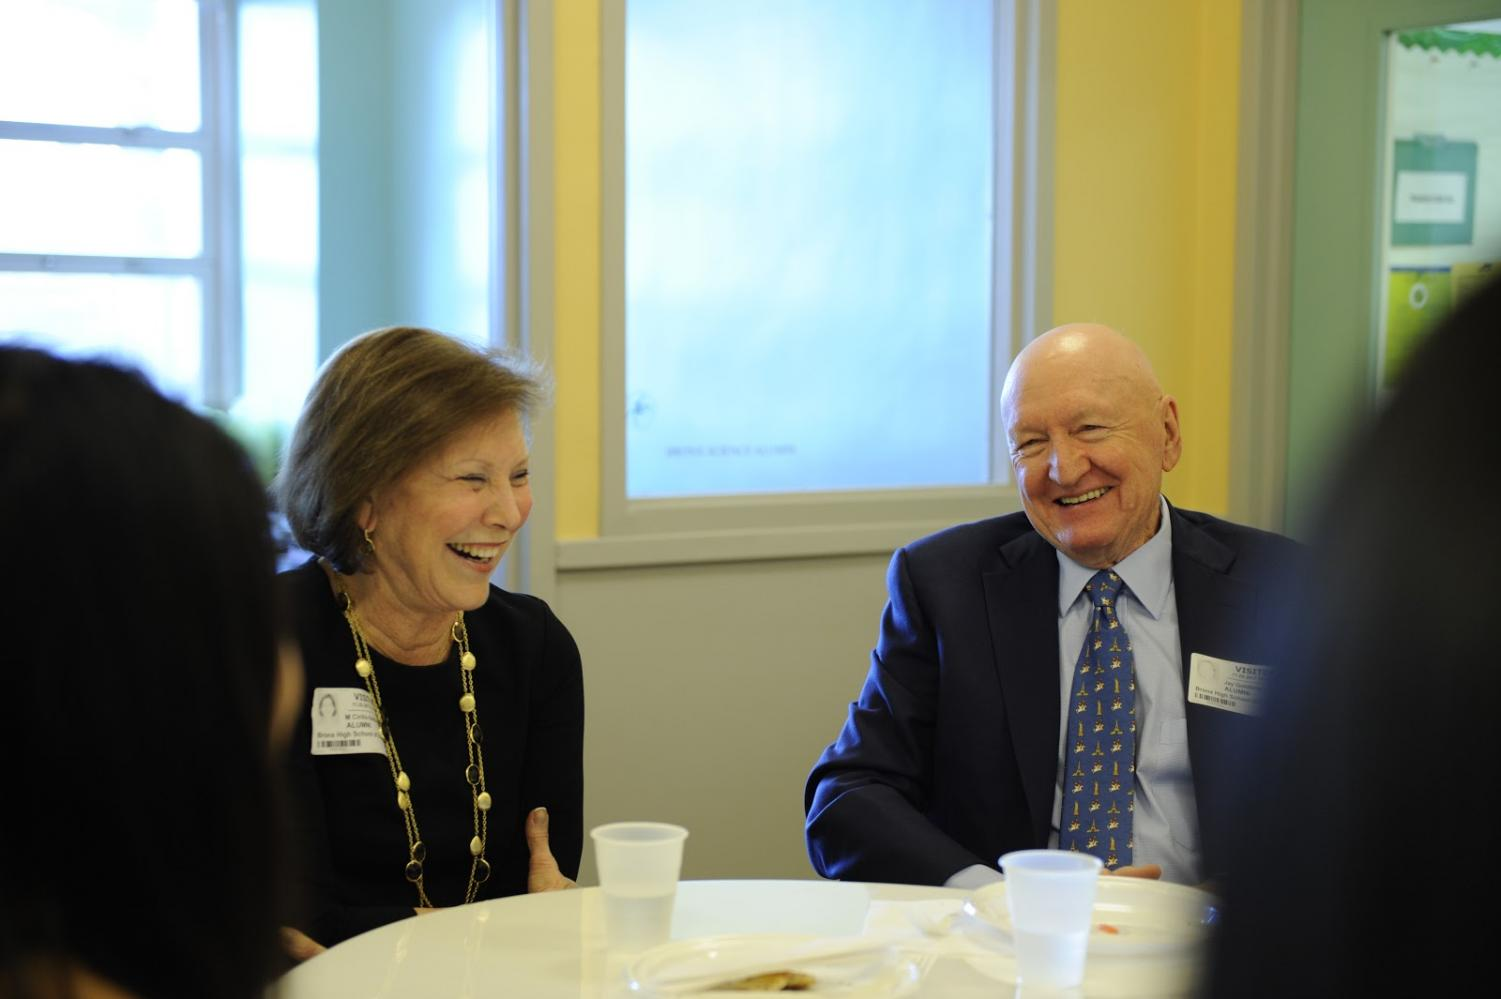 Jay Goldberg '58 and Maqry Cirillo '65 laugh while reflecting on their time attending Bronx Science